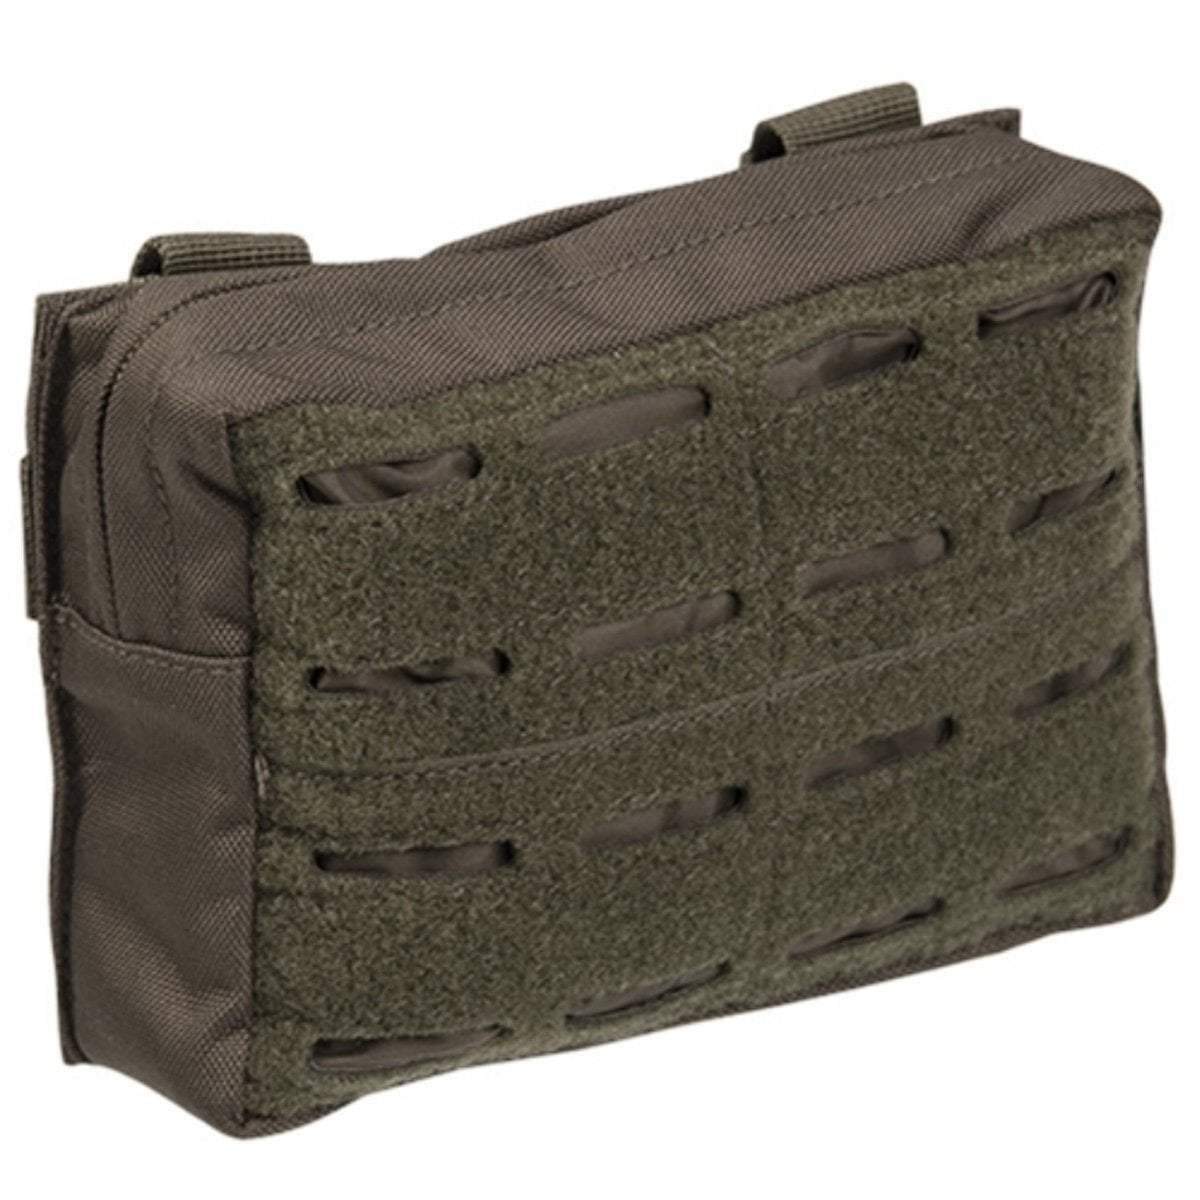 Mil-Tec Small Laser Cut MOLLE Utility Pouch Green | UKMC Pro